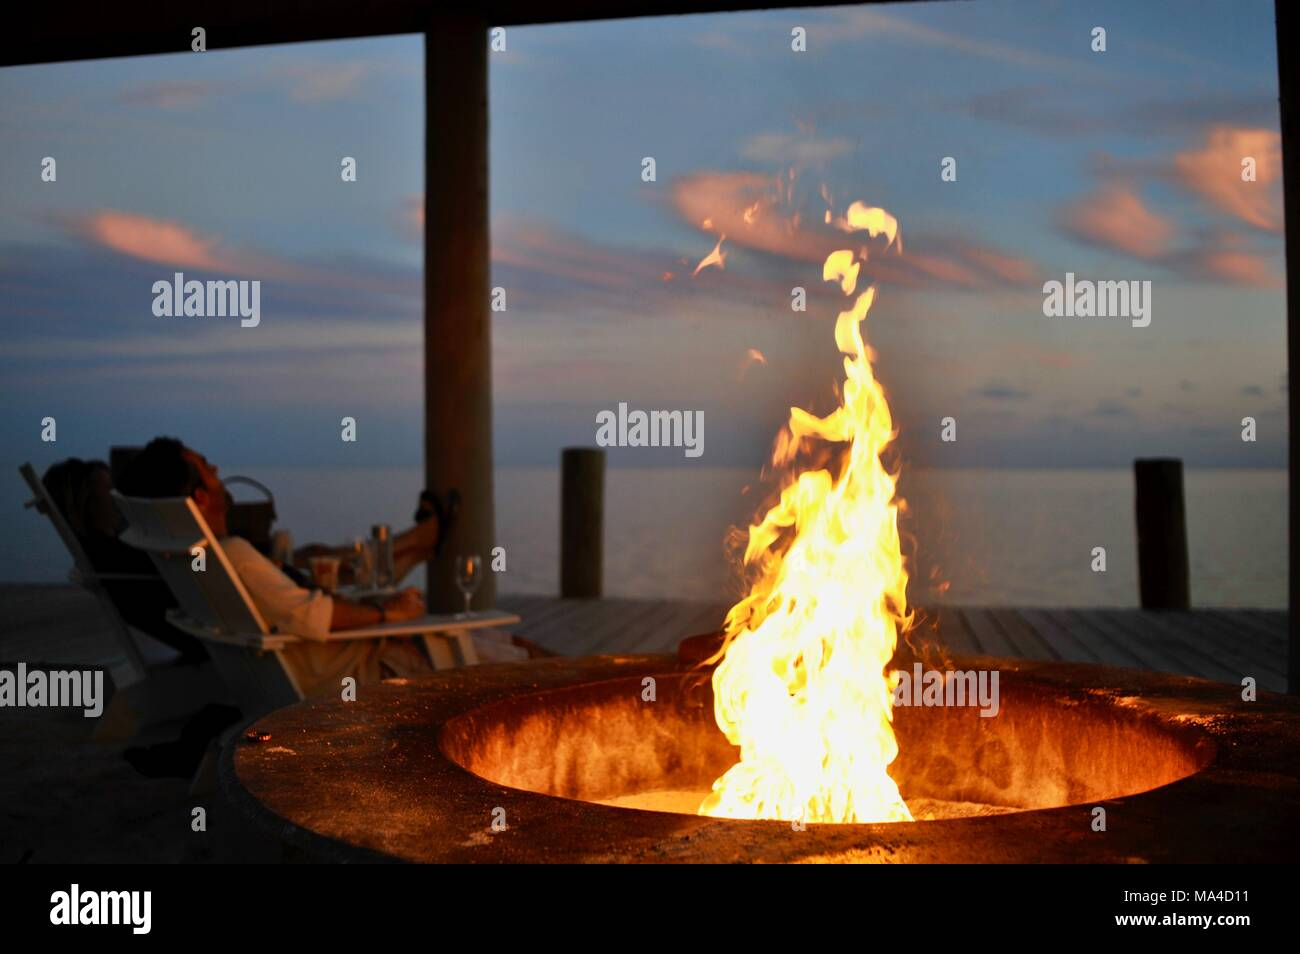 Flickering flames in outdoor fire pit along pier in Florida Keys, USA - Stock Image